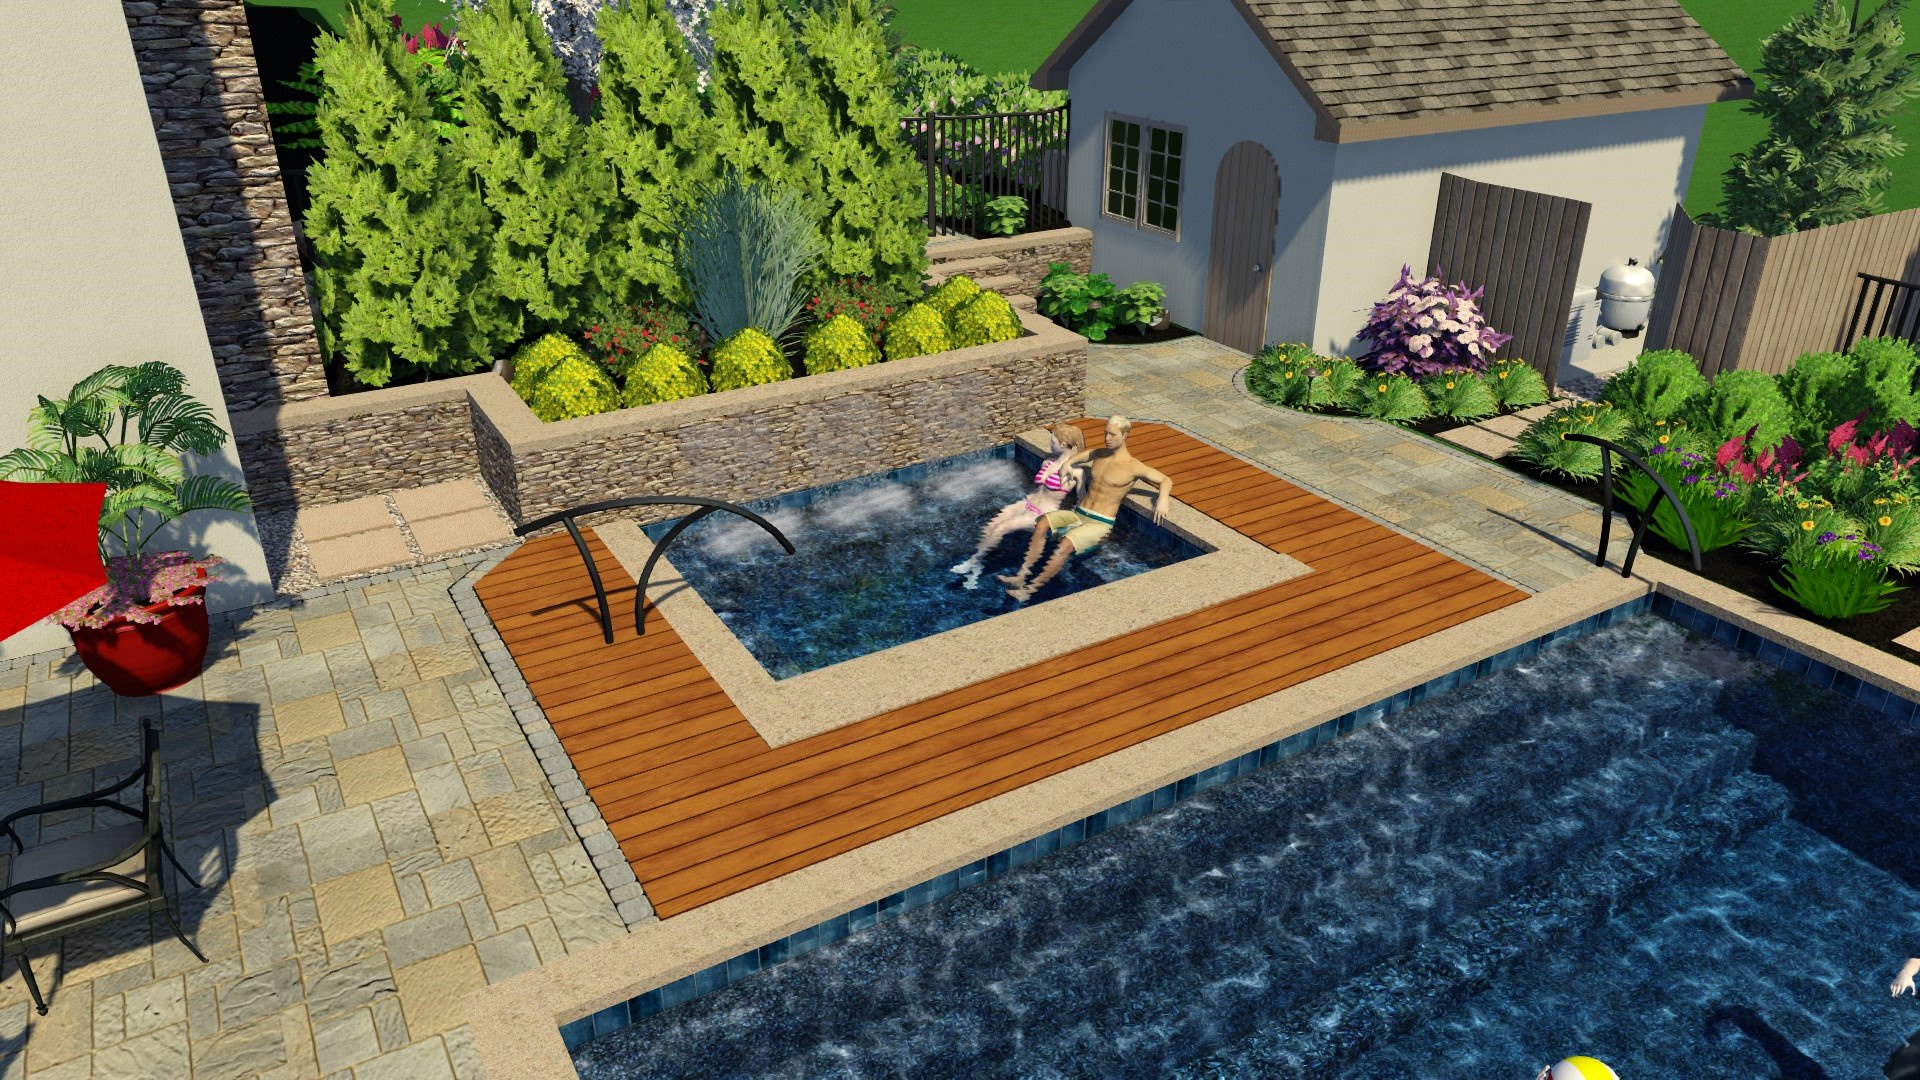 We implemented the same Brazilian hardwood used to construct the main deck into the spa decking as one way to tie everything together.